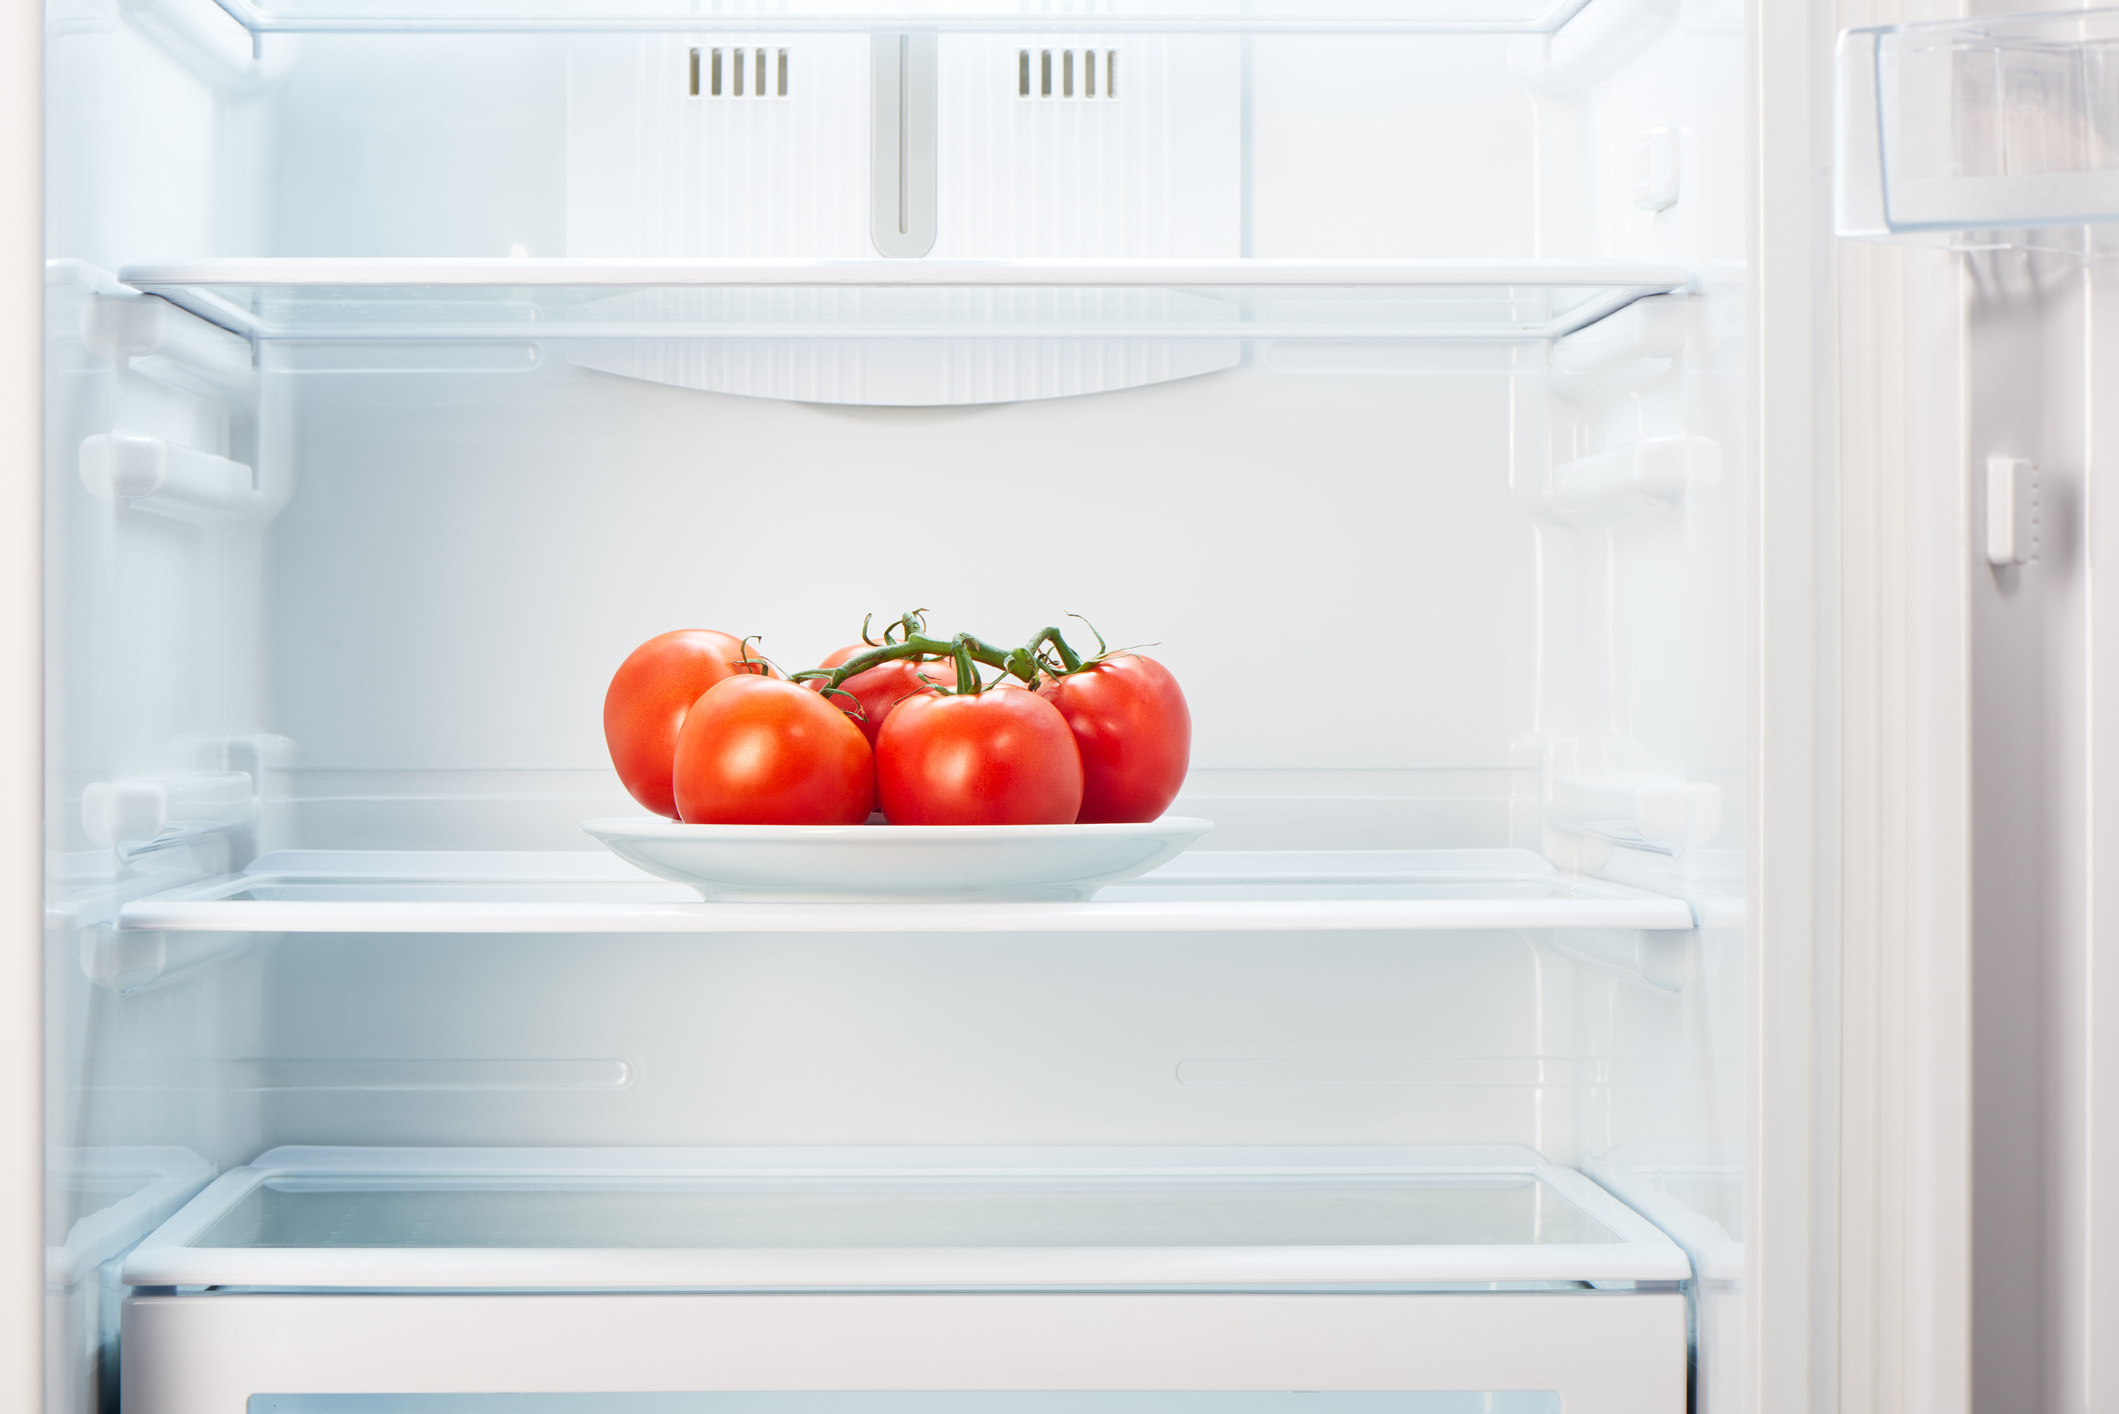 Should tomatoes be kept in the fridge? (Getty Images)